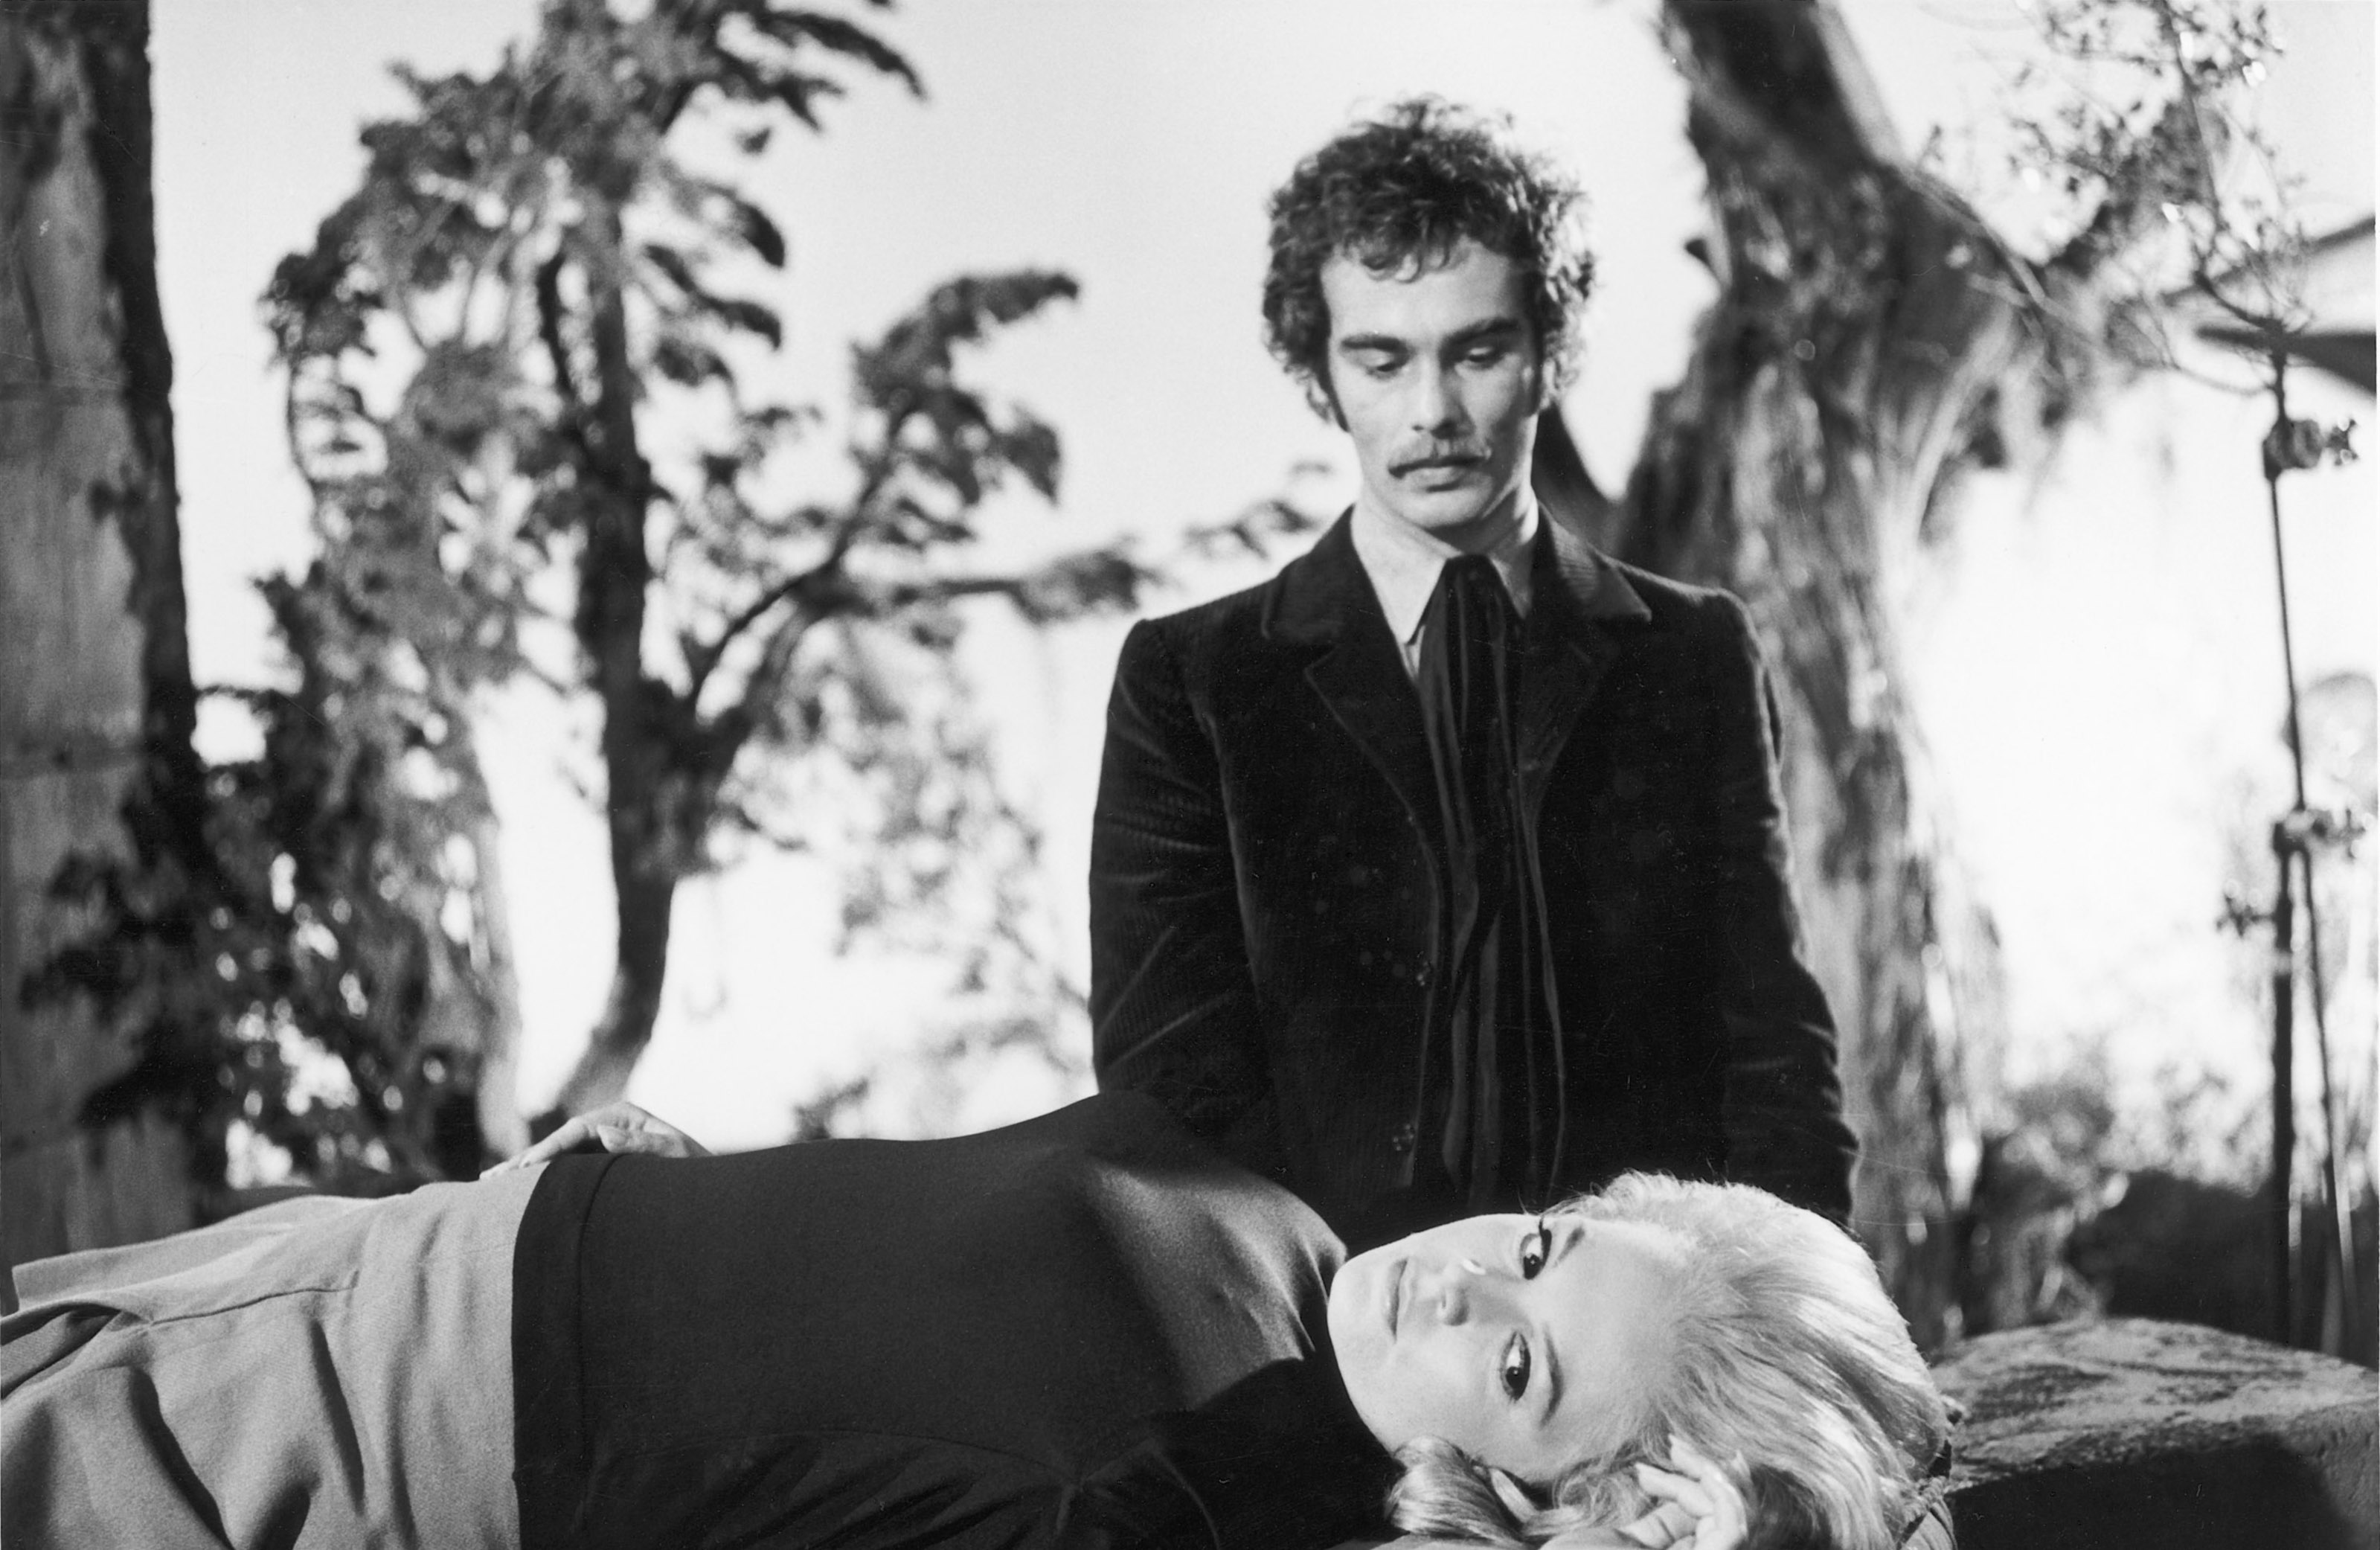 Dean Stockwell prepares to sacrifice Sandra Dee to summon the Elder Gods in The Dunwich Horror (1969)